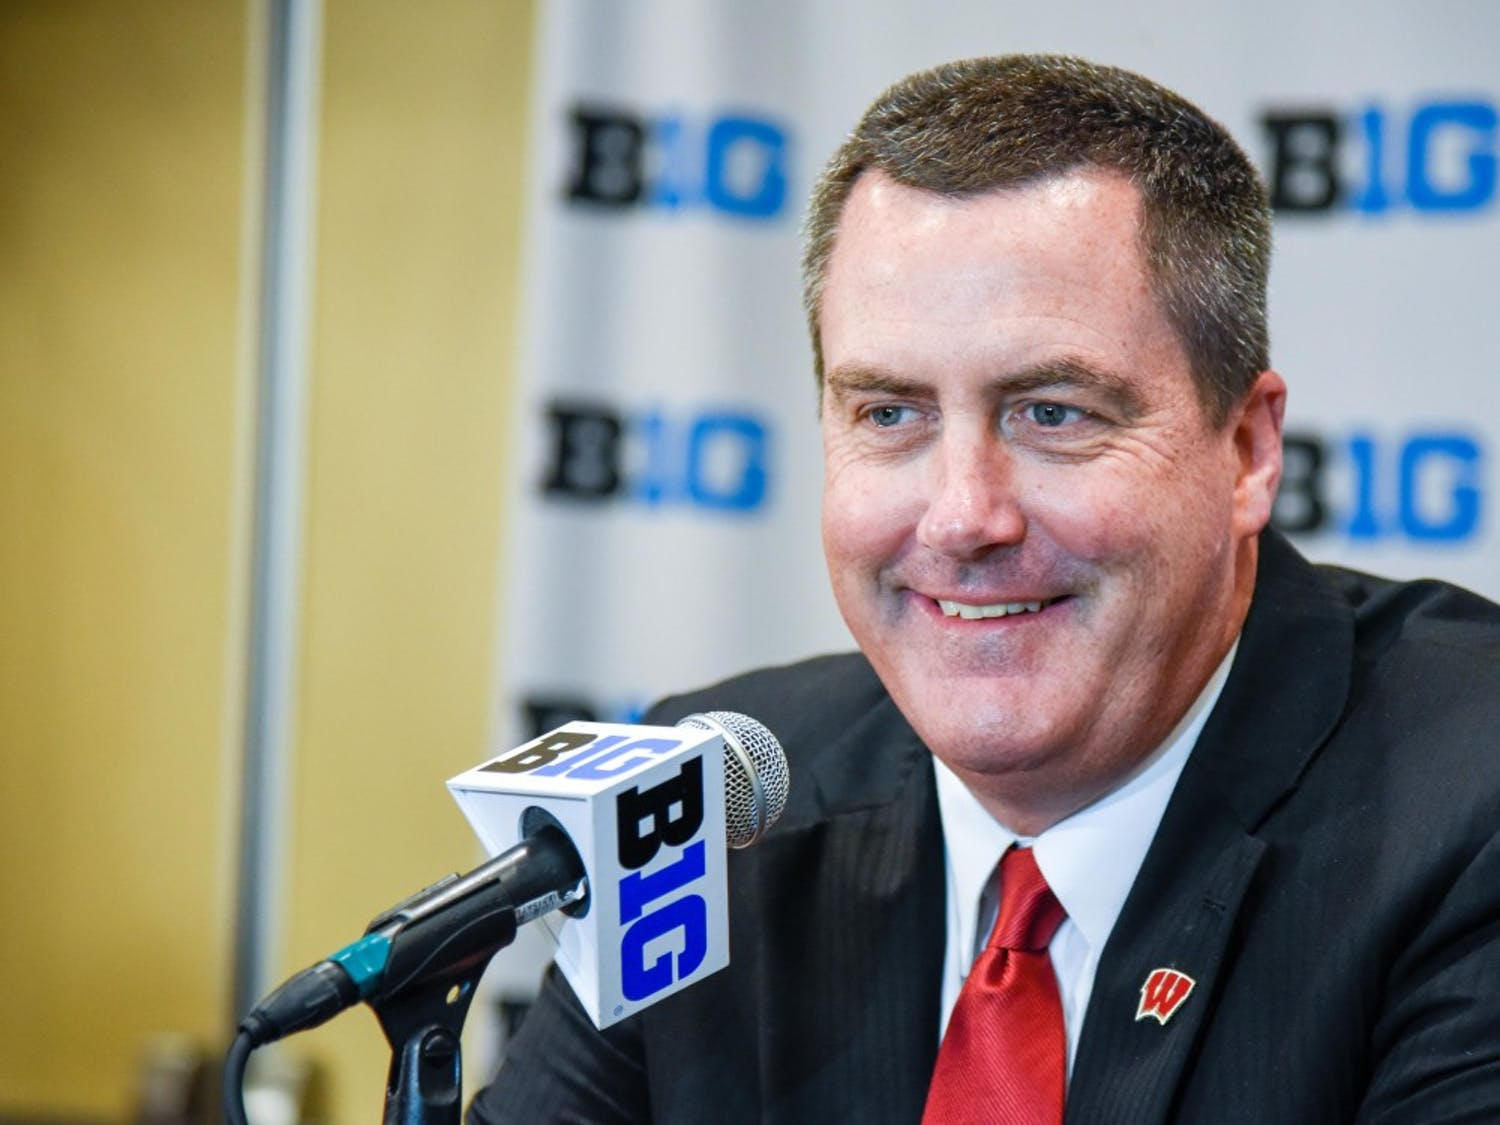 Paul Chryst has been inspiring his team to improve in the second half of games this season.